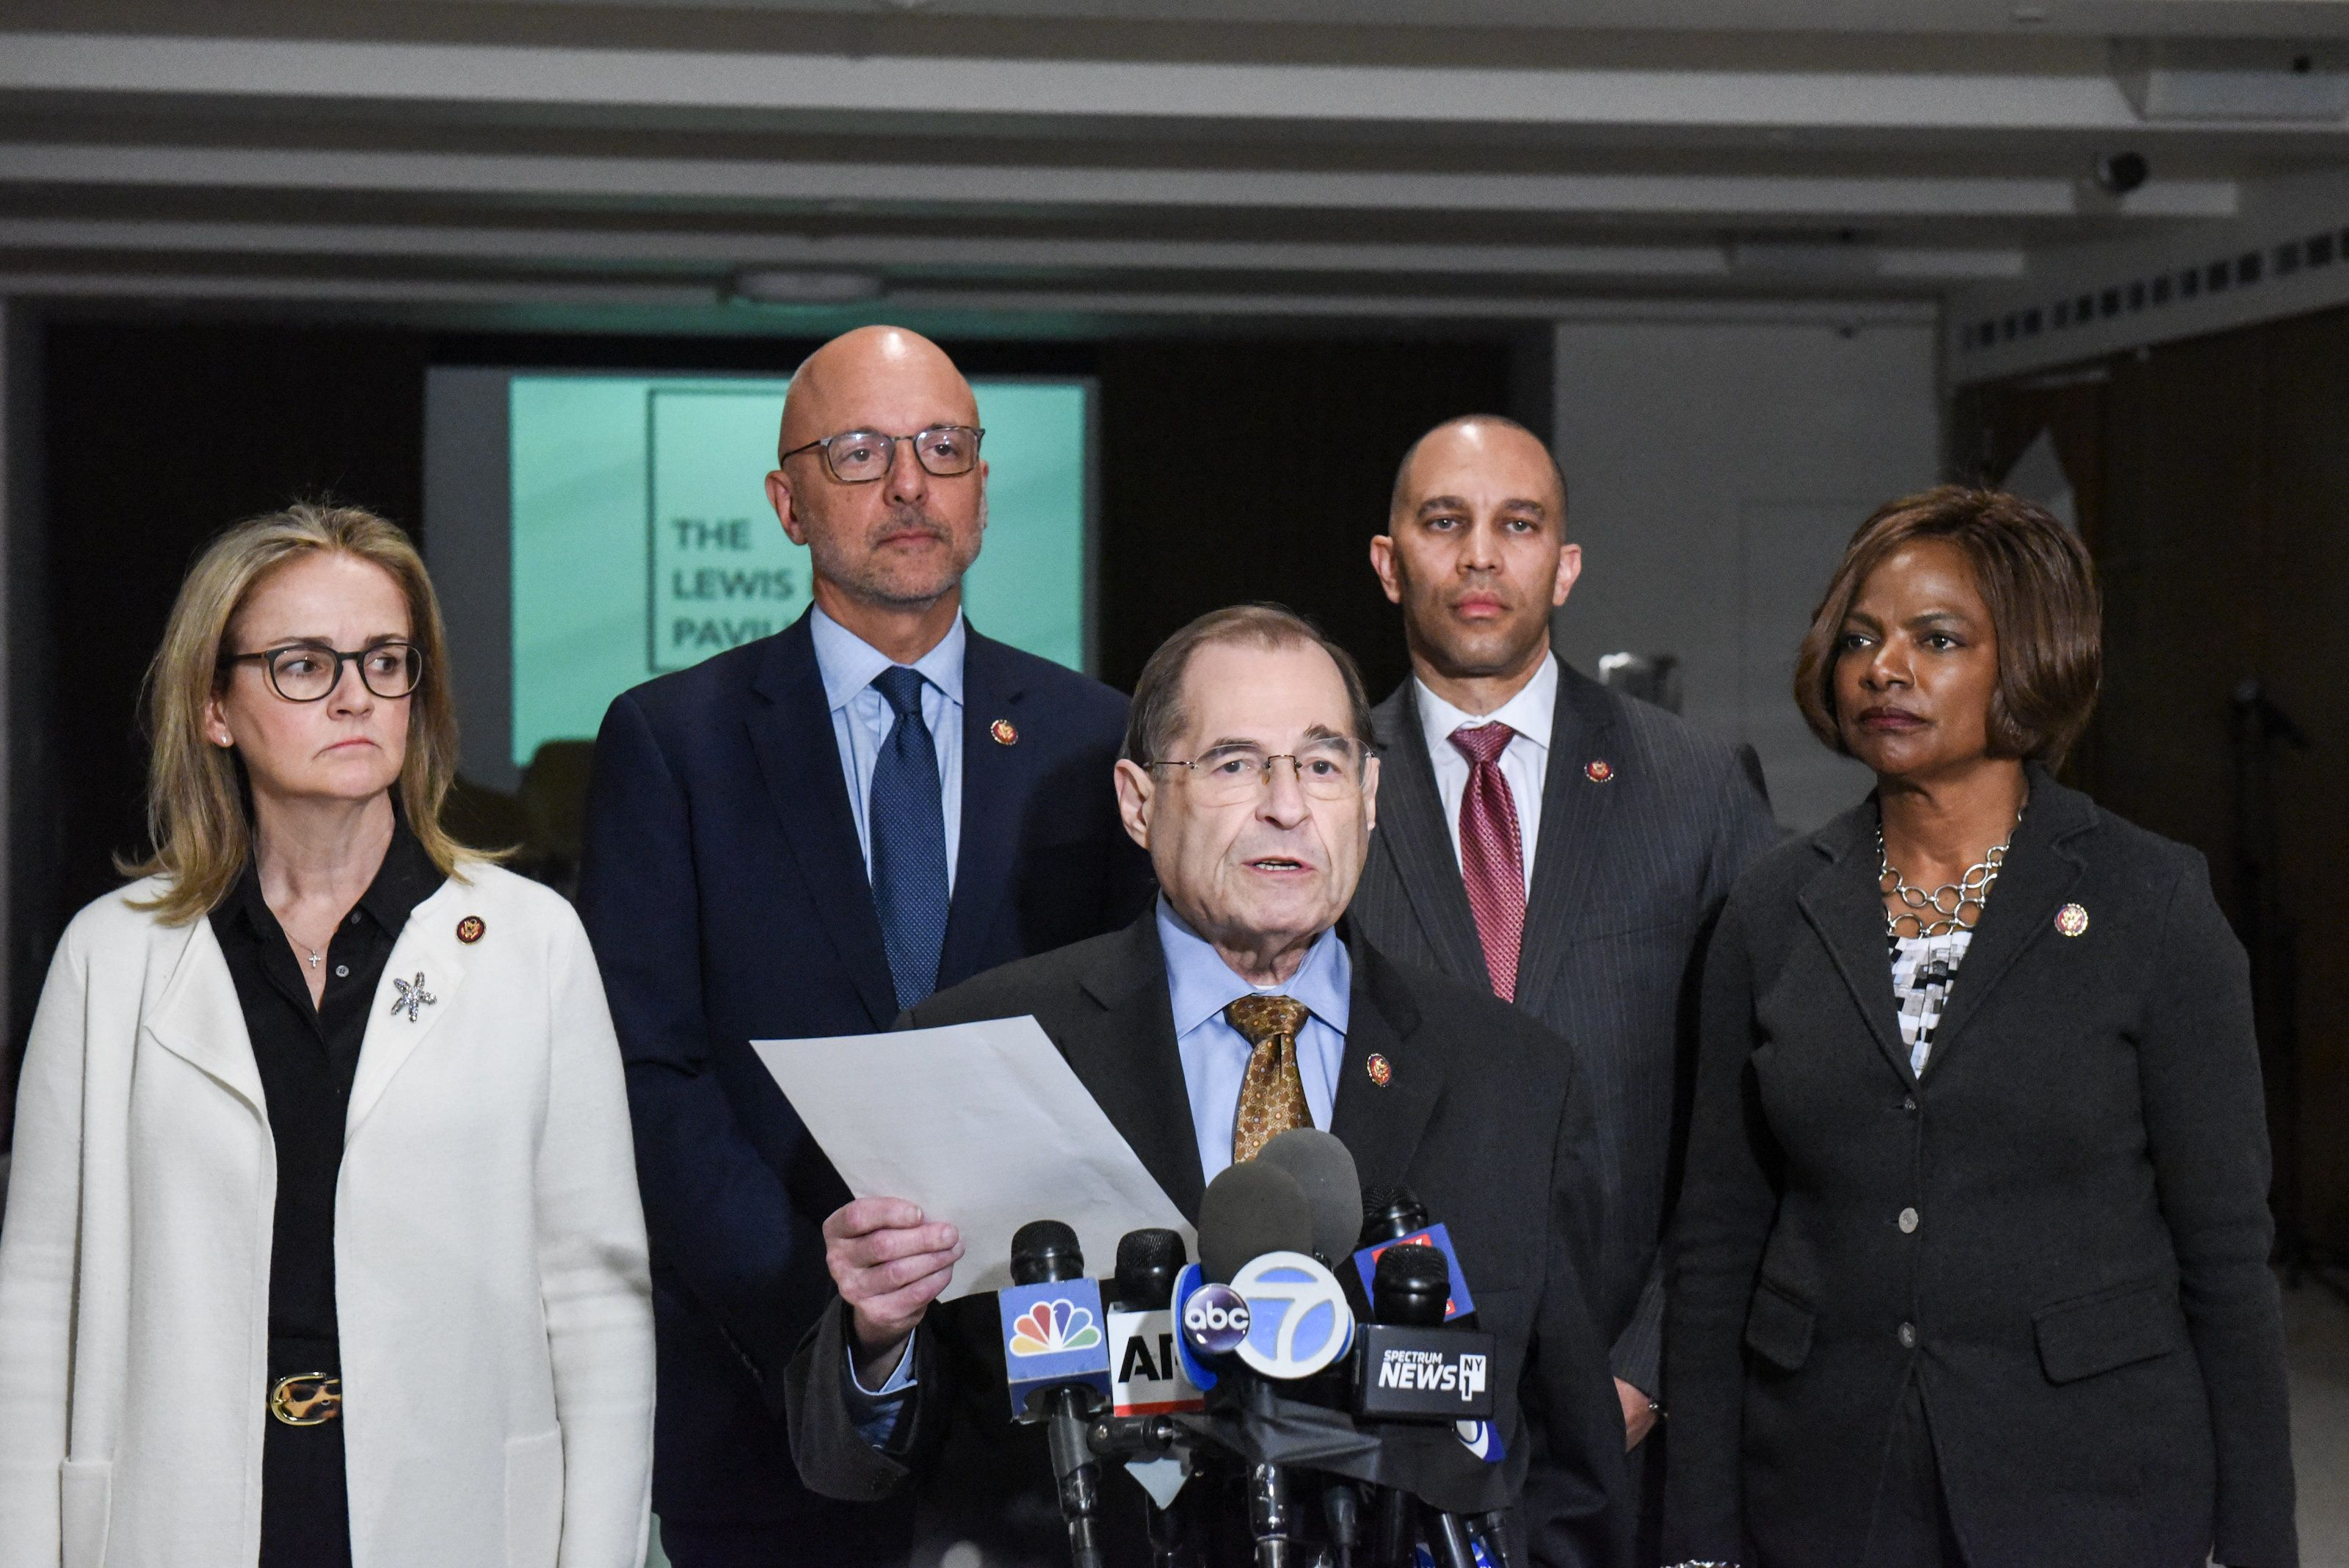 NEW YORK, NY - APRIL 17:  (L-R) U.S. Reps. Madeleine Dean (D-PA), Ted Deutch (D-FL), Jerrold Nadler (D-NY), Hakeem Jeffries (D-NY) and Val Demings (D-FL) hold a news conference about the release of the long-awaited report by special counsel Robert Mueller on April 17, 2019 in New York City. Attorney General William Barr will be holding a news conference tomorrow morning before the Mueller report is released.  (Photo by Stephanie Keith/Getty Images)